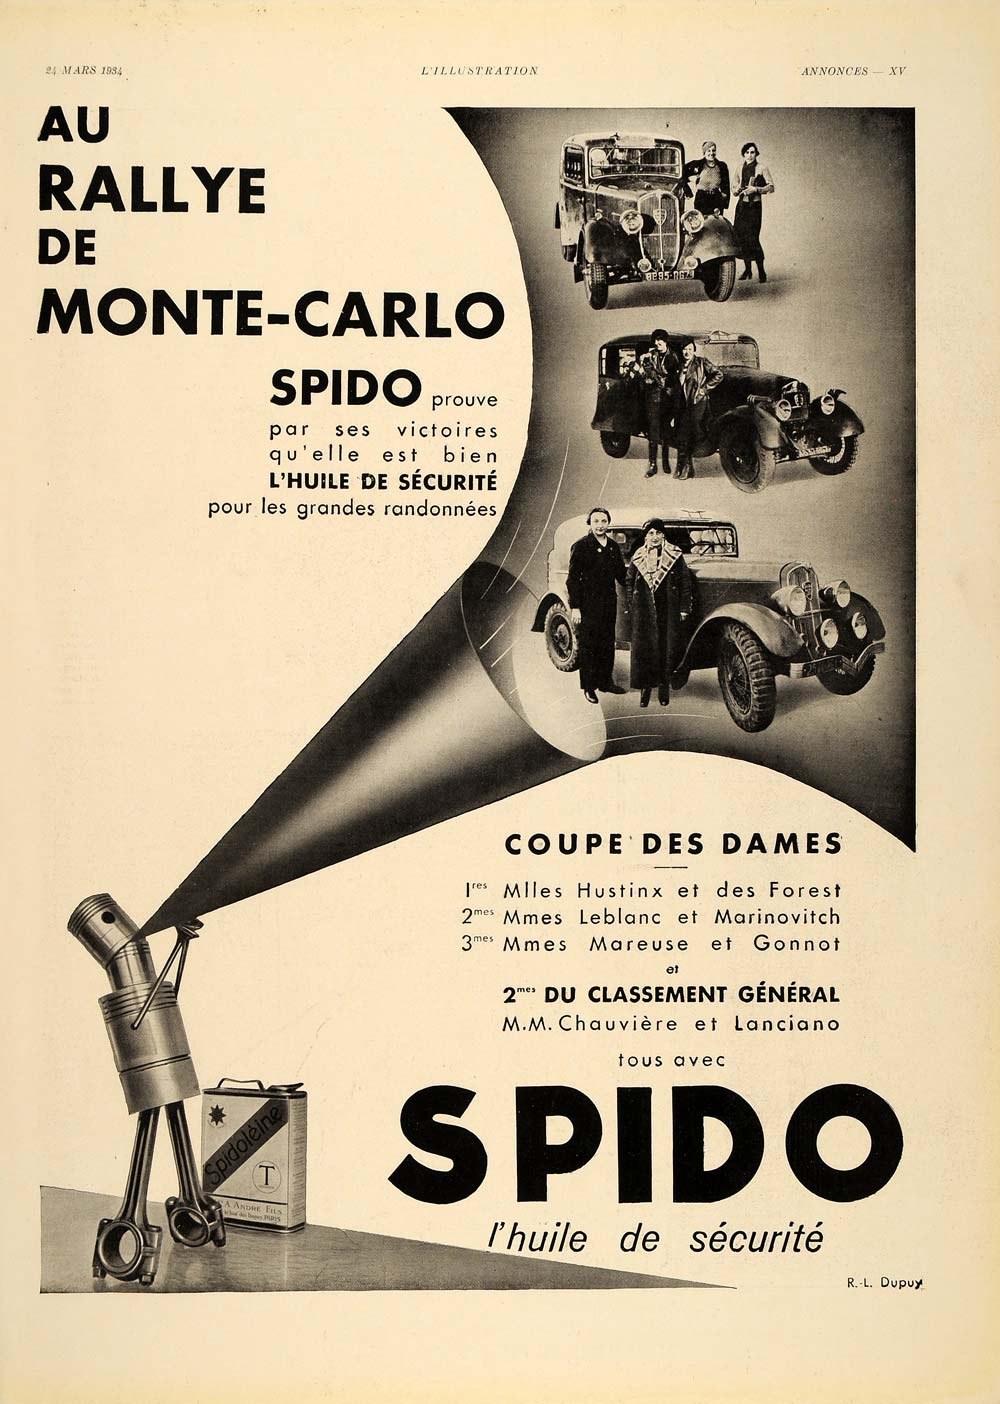 1934 French Ad SPIDO Oil Huile Rallye du Monte Carlo - ORIGINAL ADVERTISING ILL1